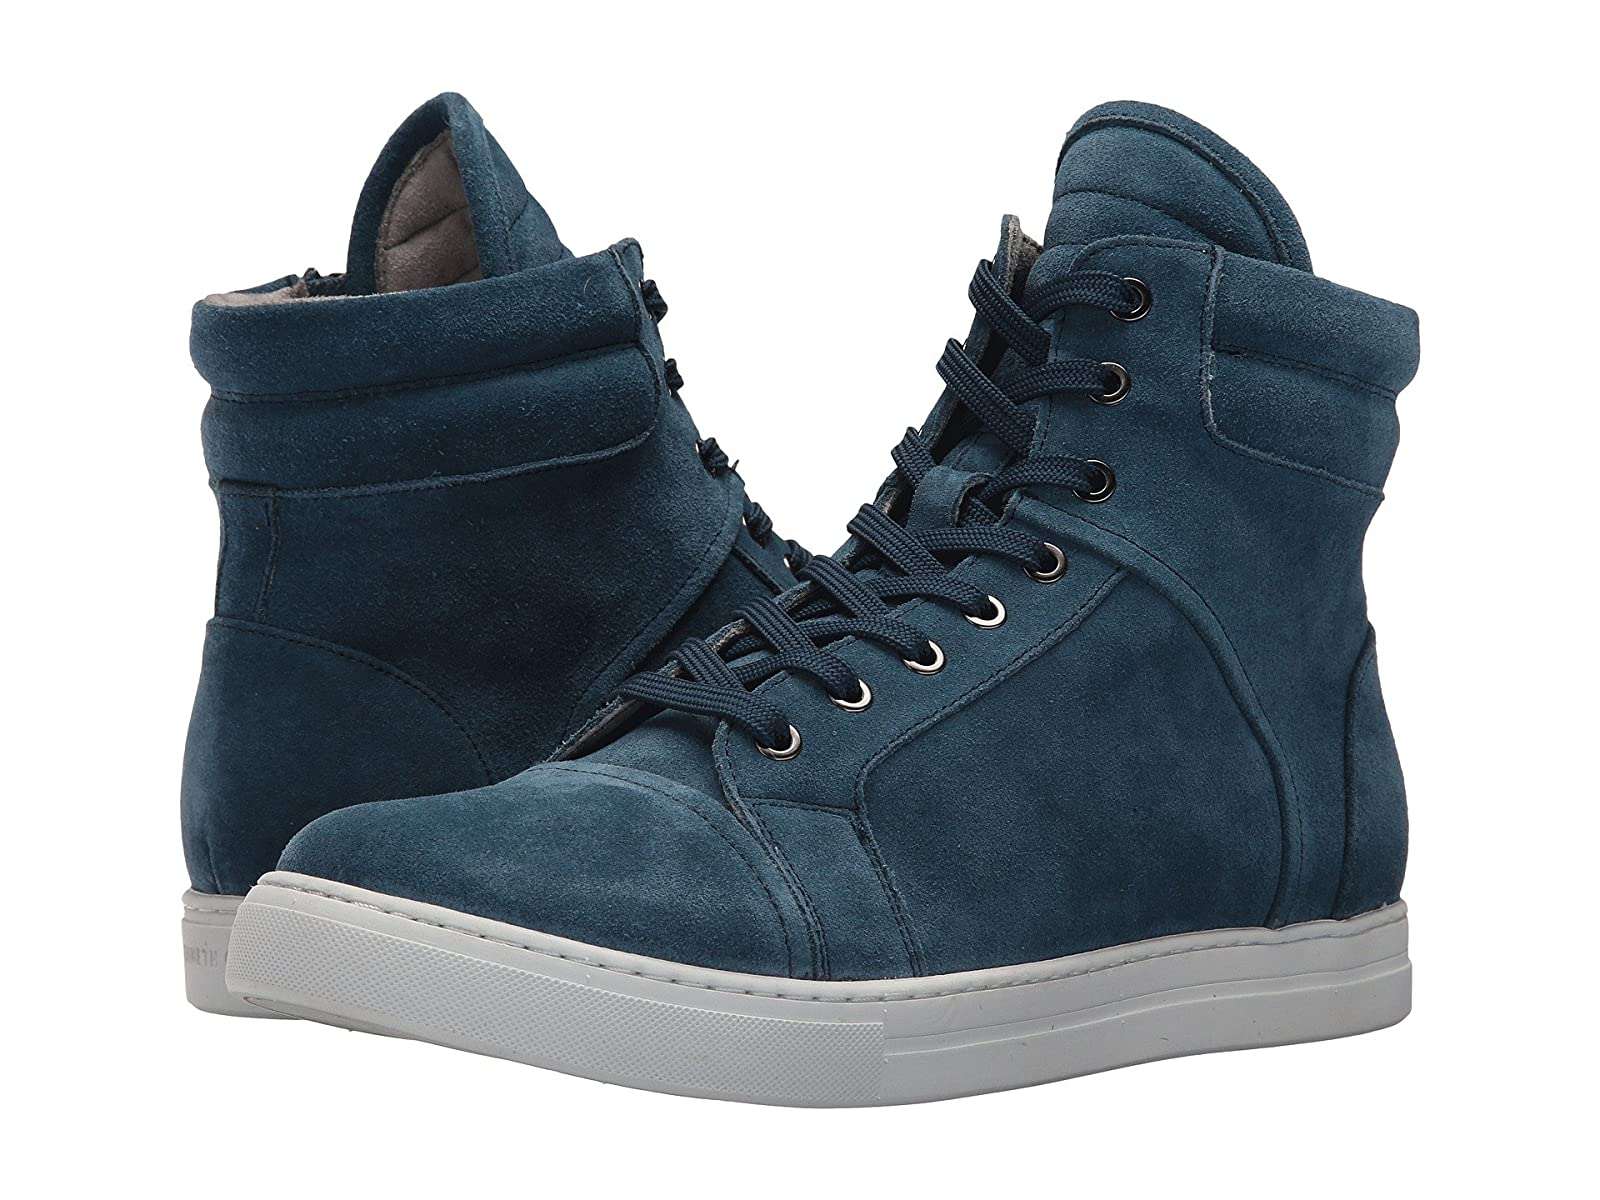 Kenneth Cole New York Double HeaderAtmospheric grades have affordable shoes